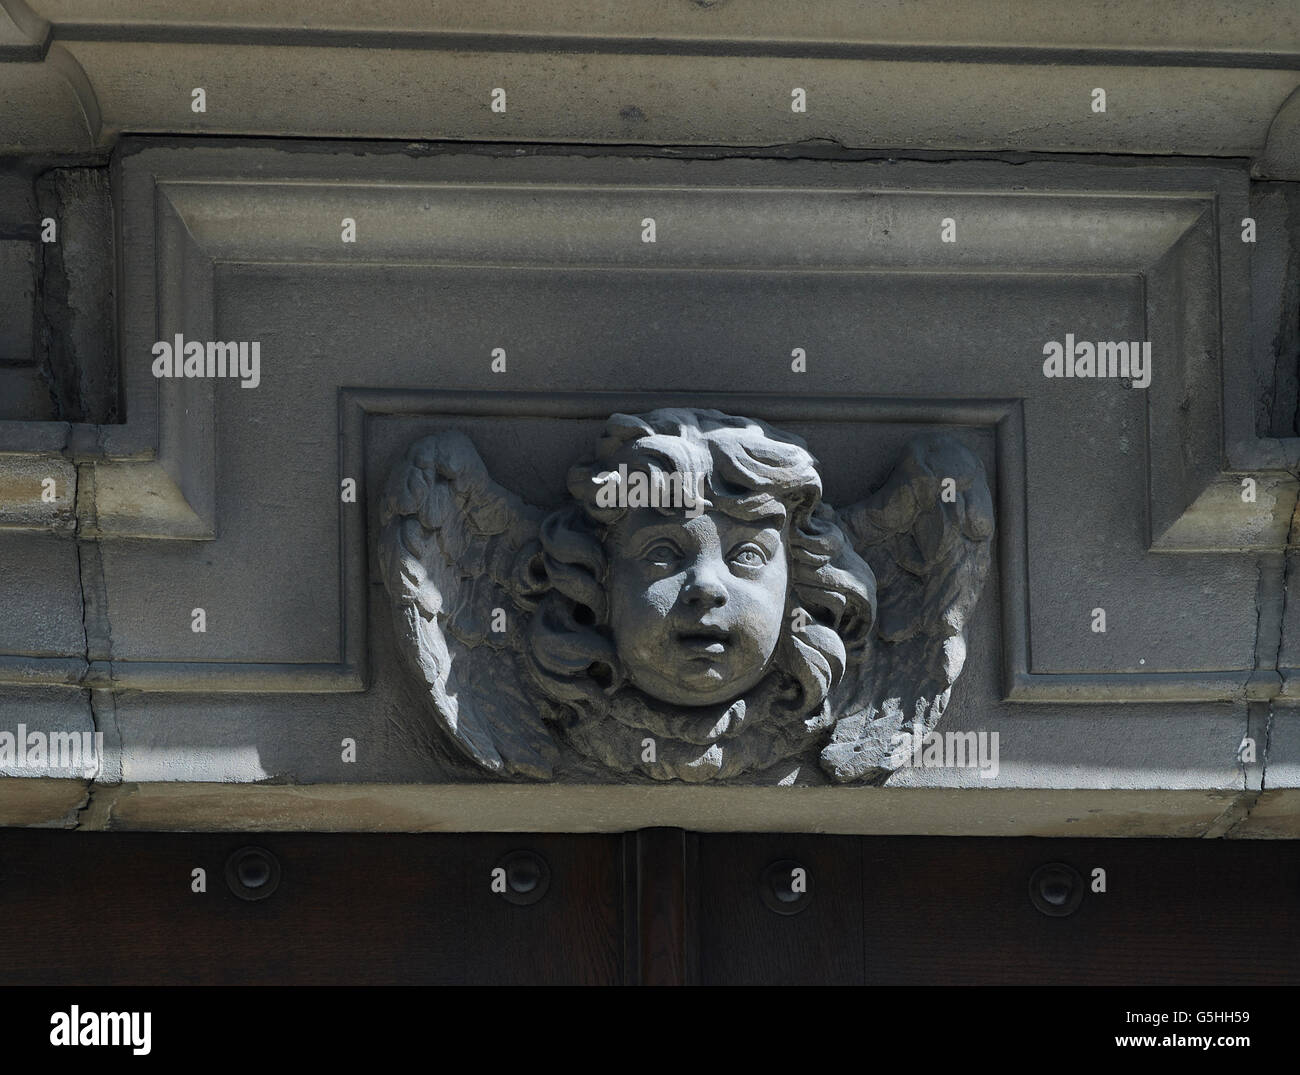 St Lawrence Jewry, church in the City of London, by Christopher Wren 1670s. Stone carving of Cherub over door. - Stock Image